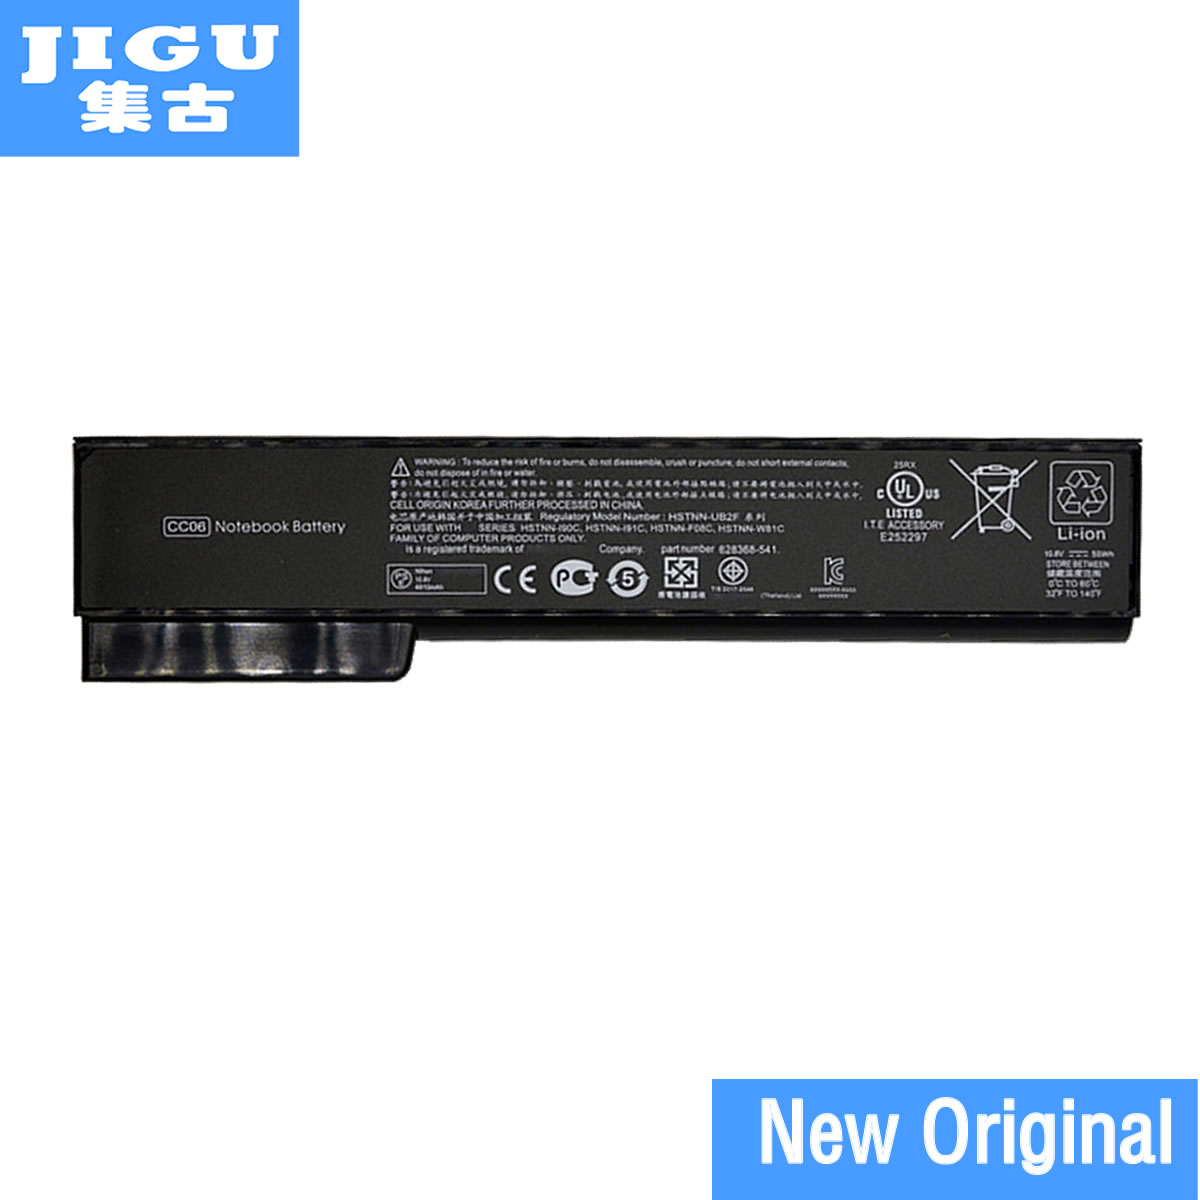 JIGU Original Laptop <font><b>Battery</b></font> For <font><b>HP</b></font> For ProBook 6465b 6470b 6475b 6560b 6570b For <font><b>EliteBook</b></font> 8460p 8460w 8470p 8470w 8560p <font><b>8570p</b></font> image